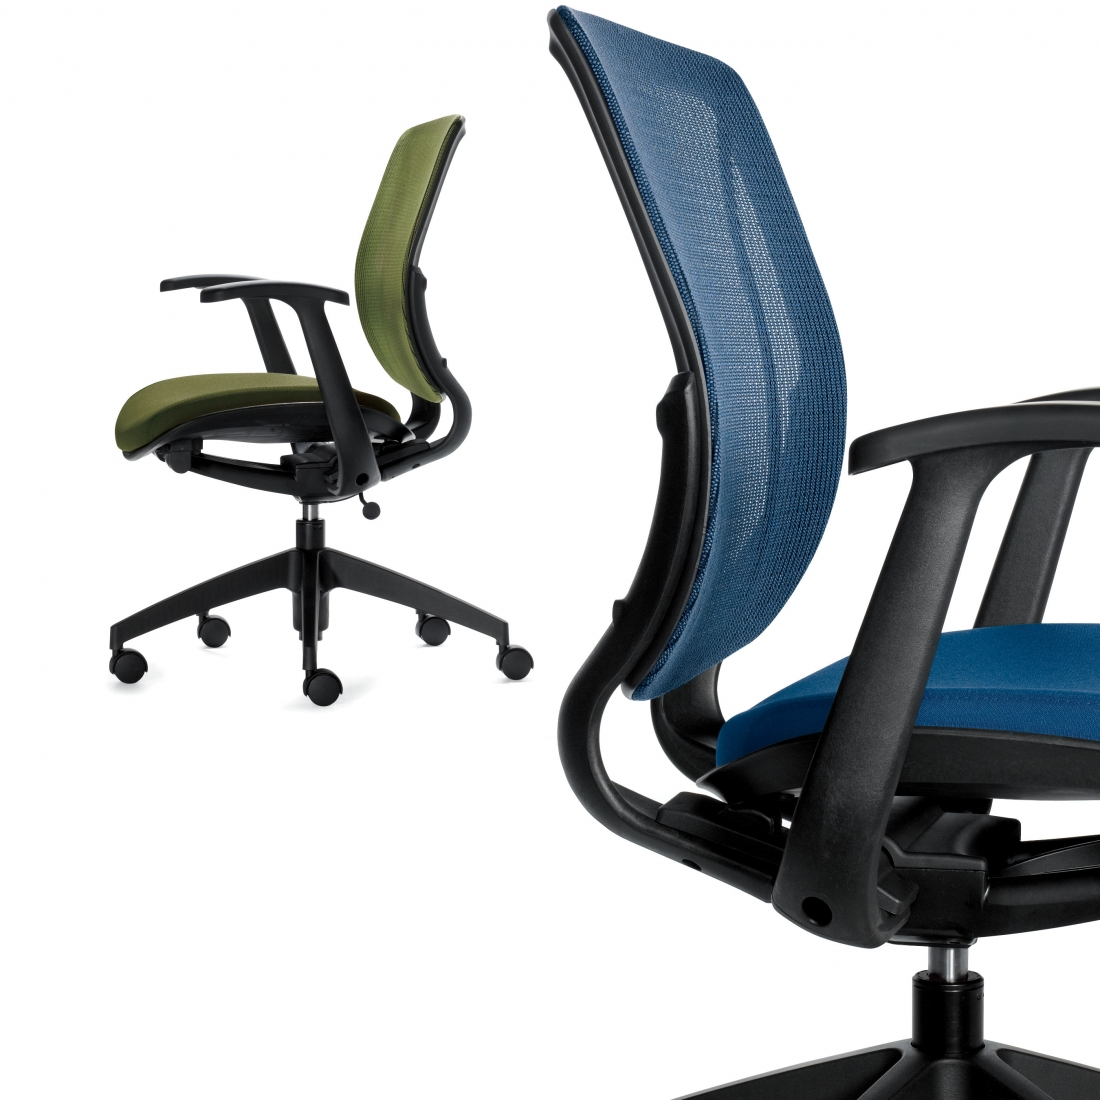 Ergonomic Chair Under 500 Little Tikes Classic Table And Chairs Set Office Anything Furniture Blog How To Choose An